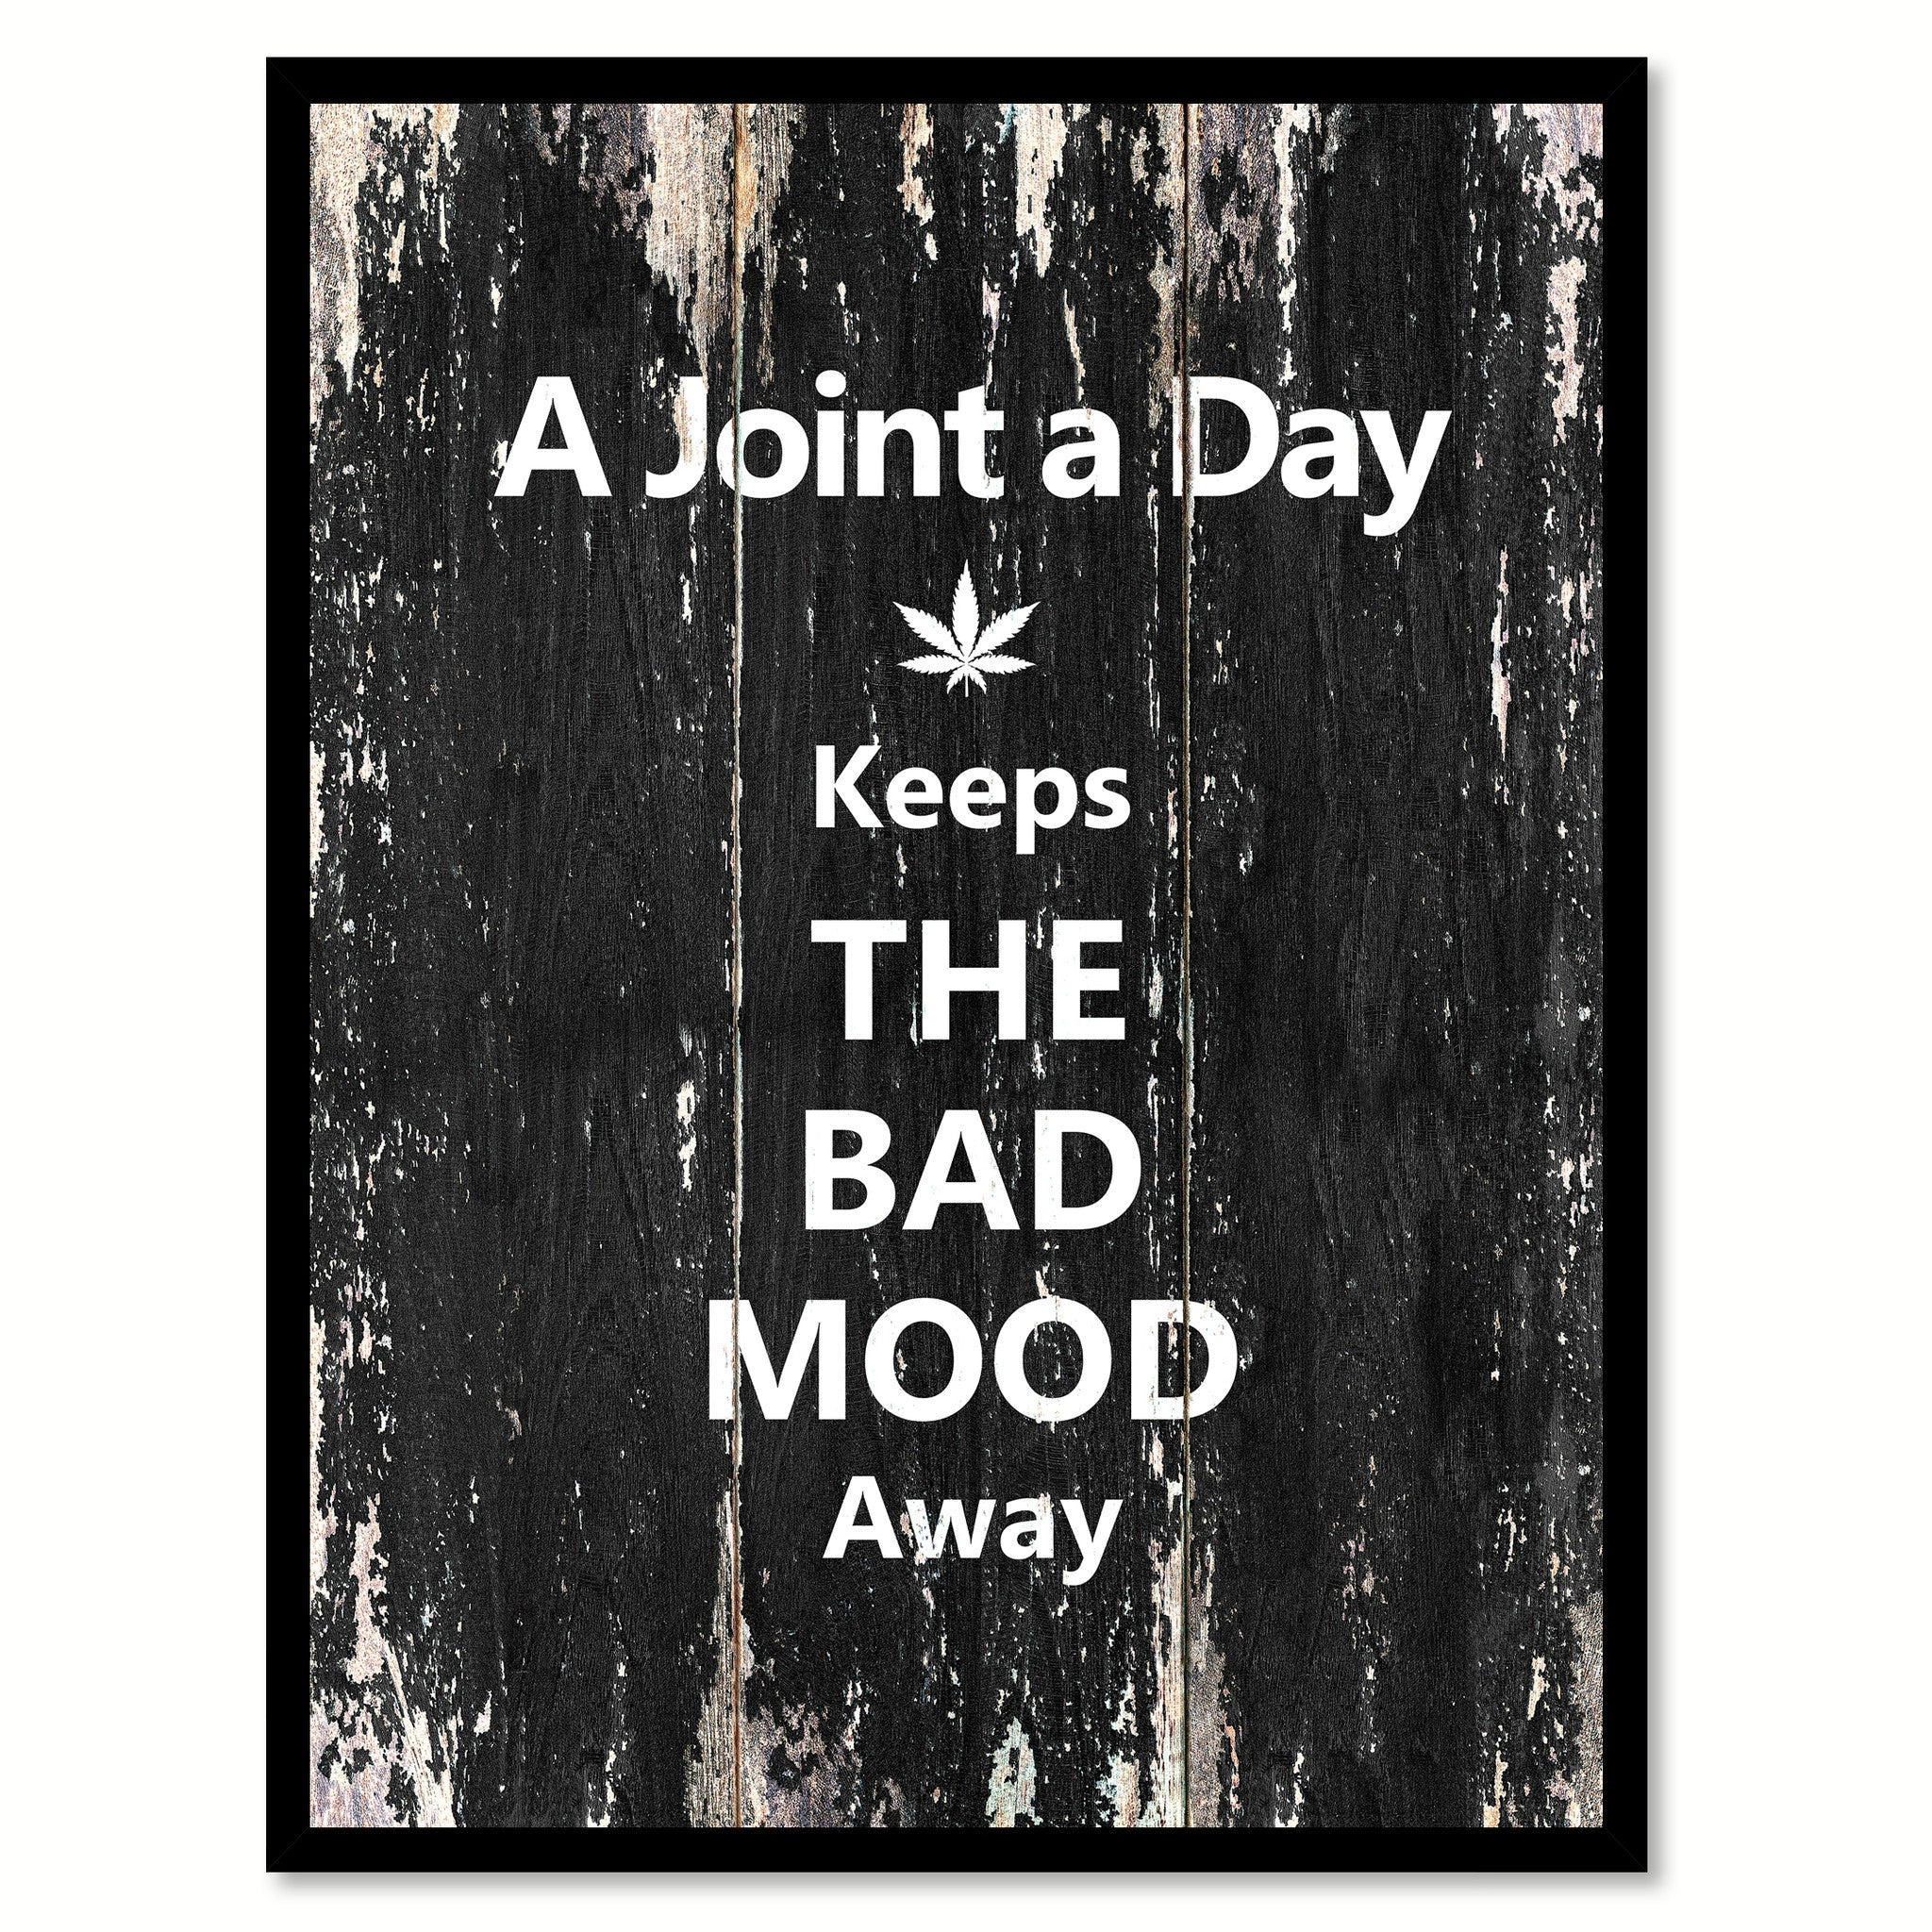 A Joint Day Keeps The Bad Mood Away Inspirational Motivation Quote Saying Decorative Home Decor Wall Art Gift Ideas SpotColorArt